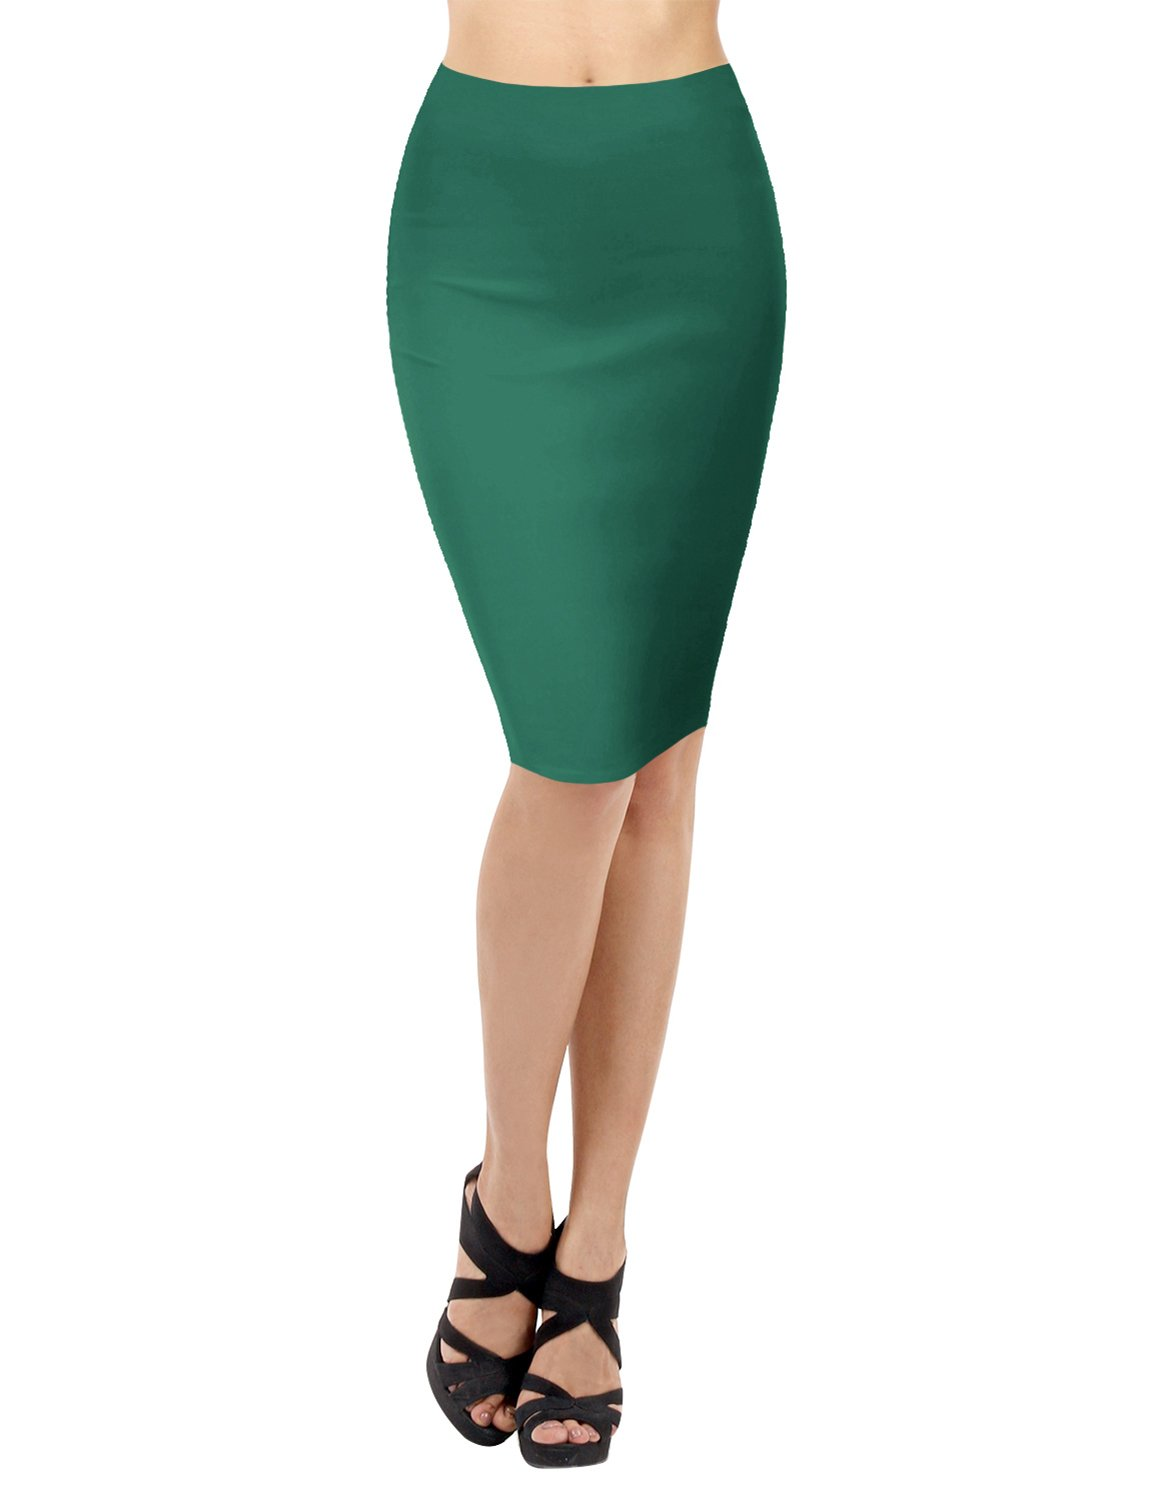 c0c4f0c362b0 ... TWINTH Pencil Skirts Plus Size Casual Skirt Elastic Waist Band Scuba  Streychy Solid Color NEWCWBMS04 ...